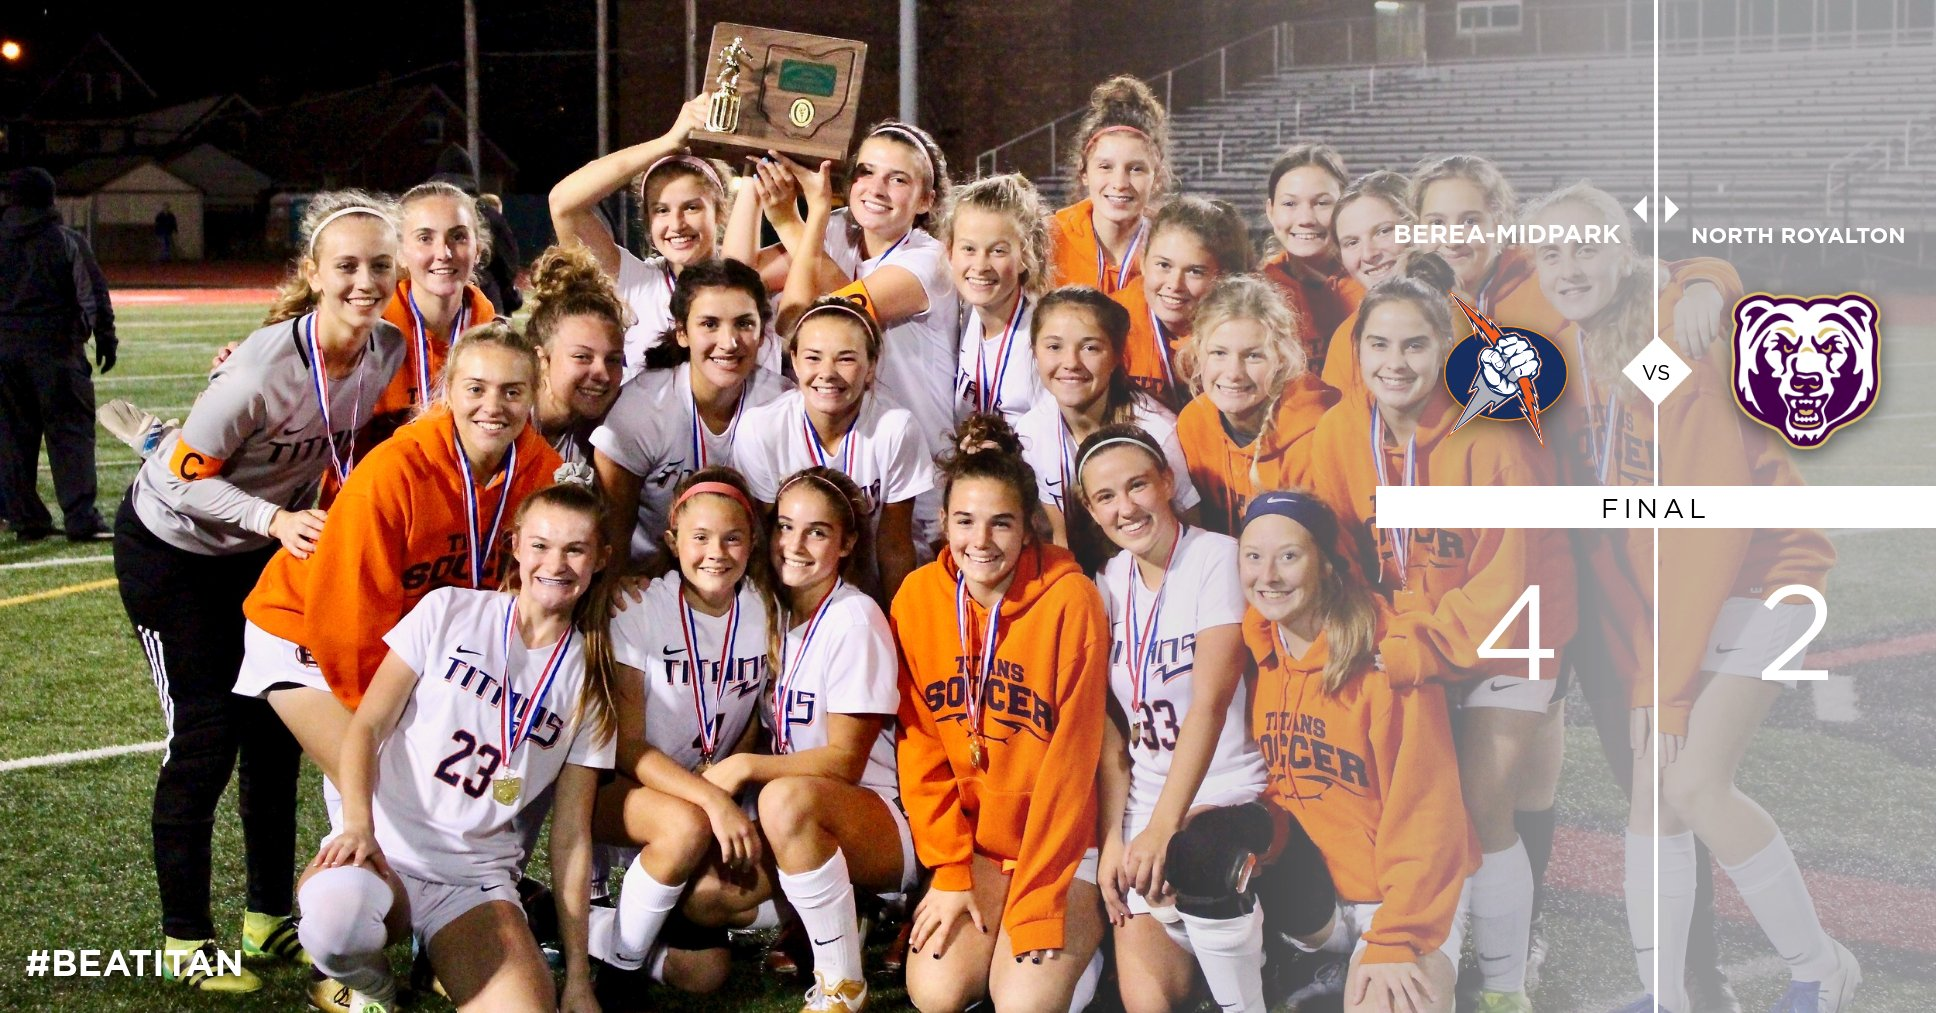 History Made; Berea-Midpark Crowned District Champions with 4 – 2 Win Over North Royalton